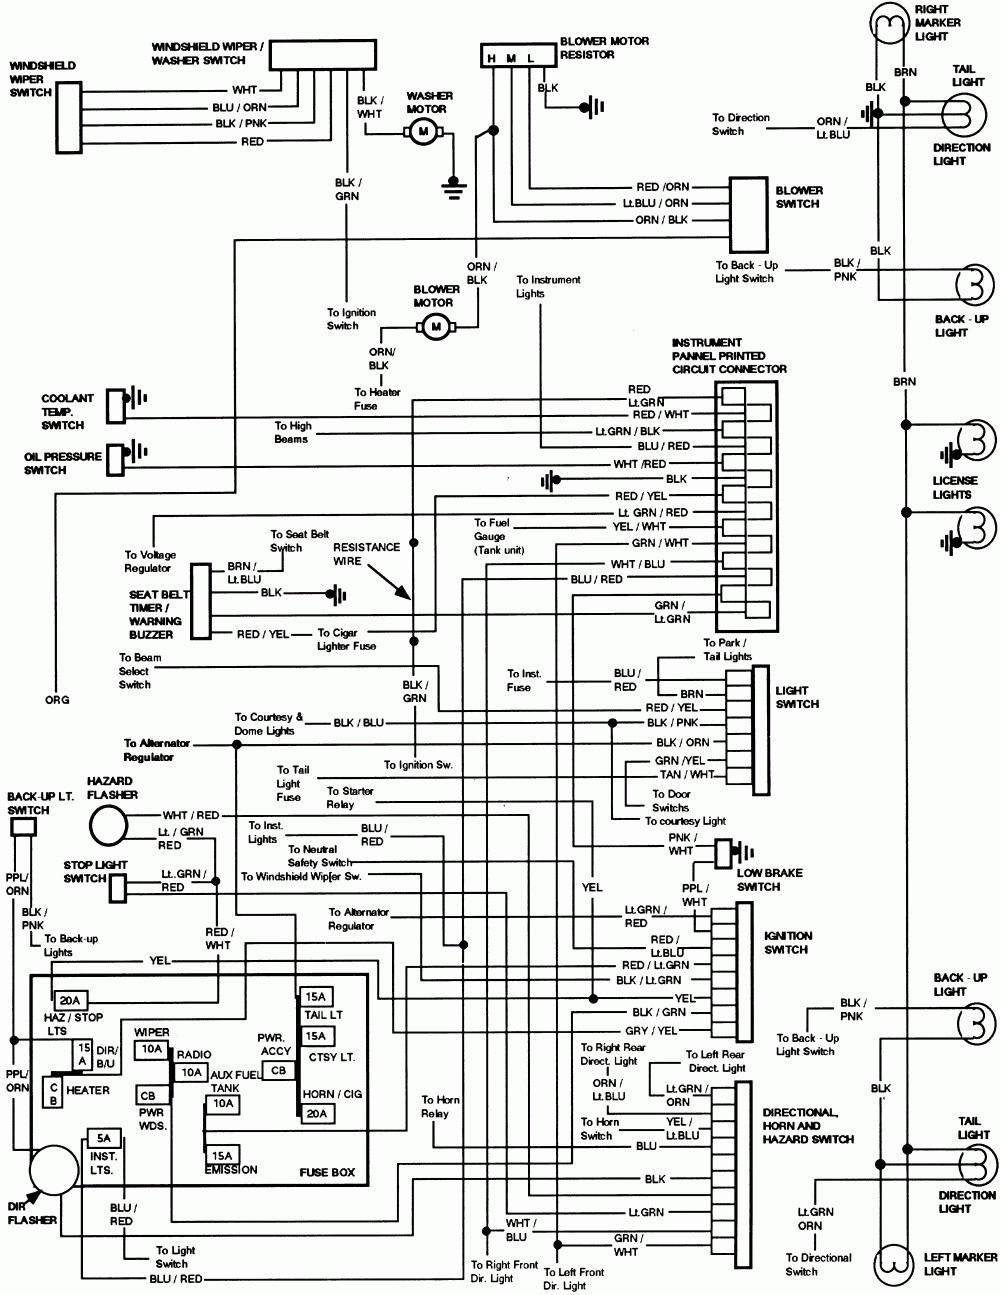 hight resolution of 2000 ford f 150 window wiring diagram wiring diagram detailed 2005 ford f 150 wiring